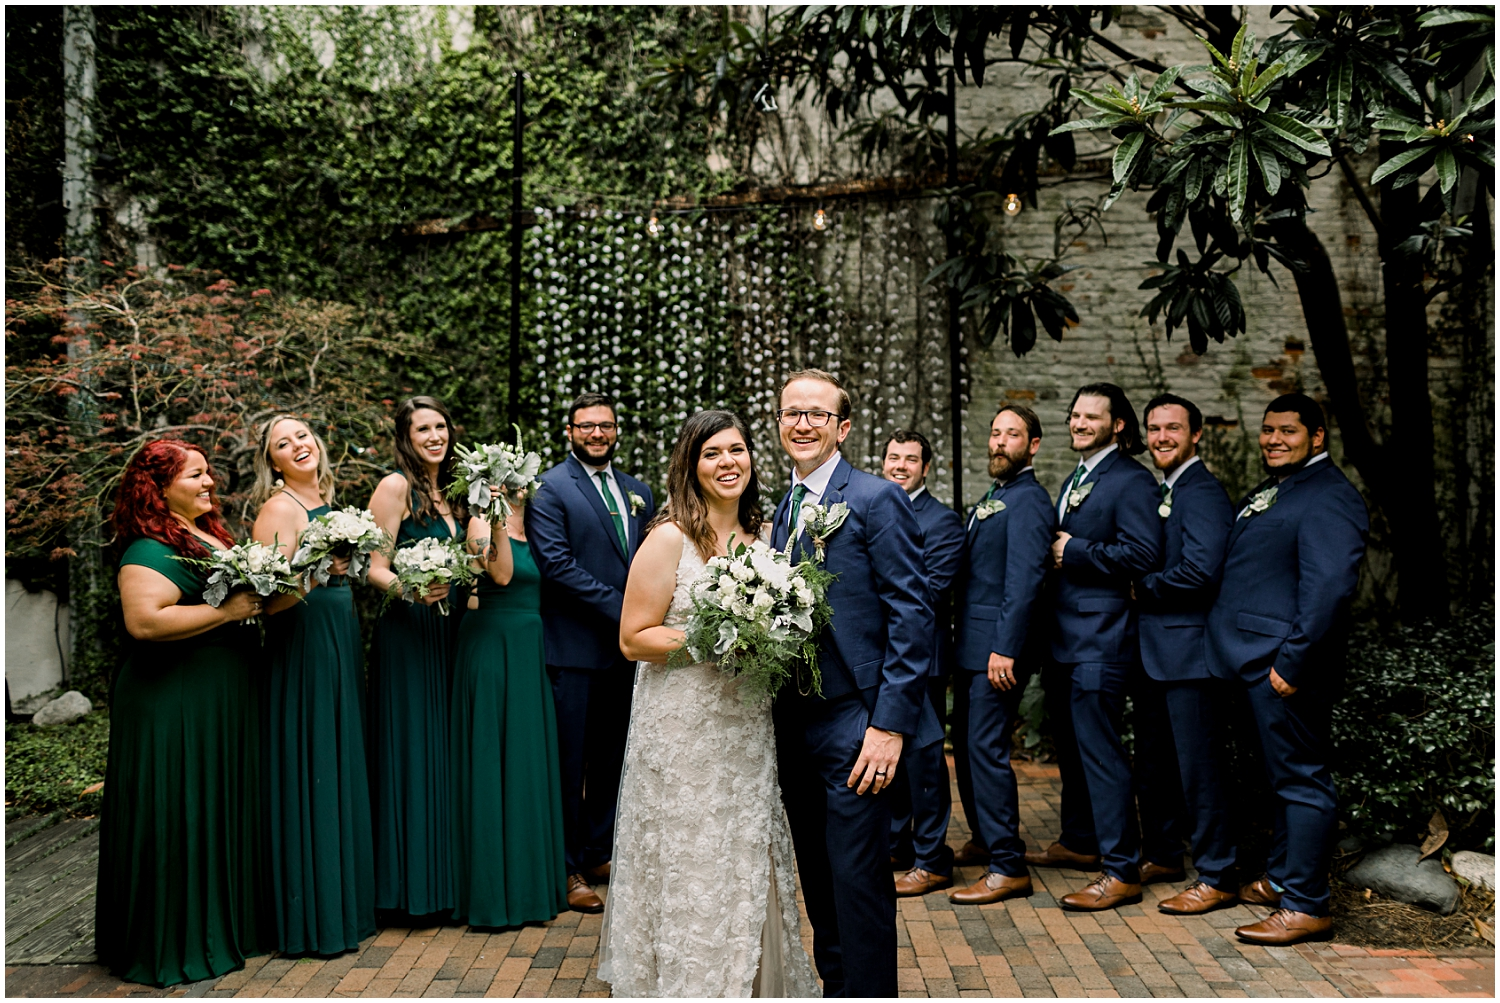 The Atrium, Downtown Wilmington NC Wedding_Erin L. Taylor Photography_0027.jpg